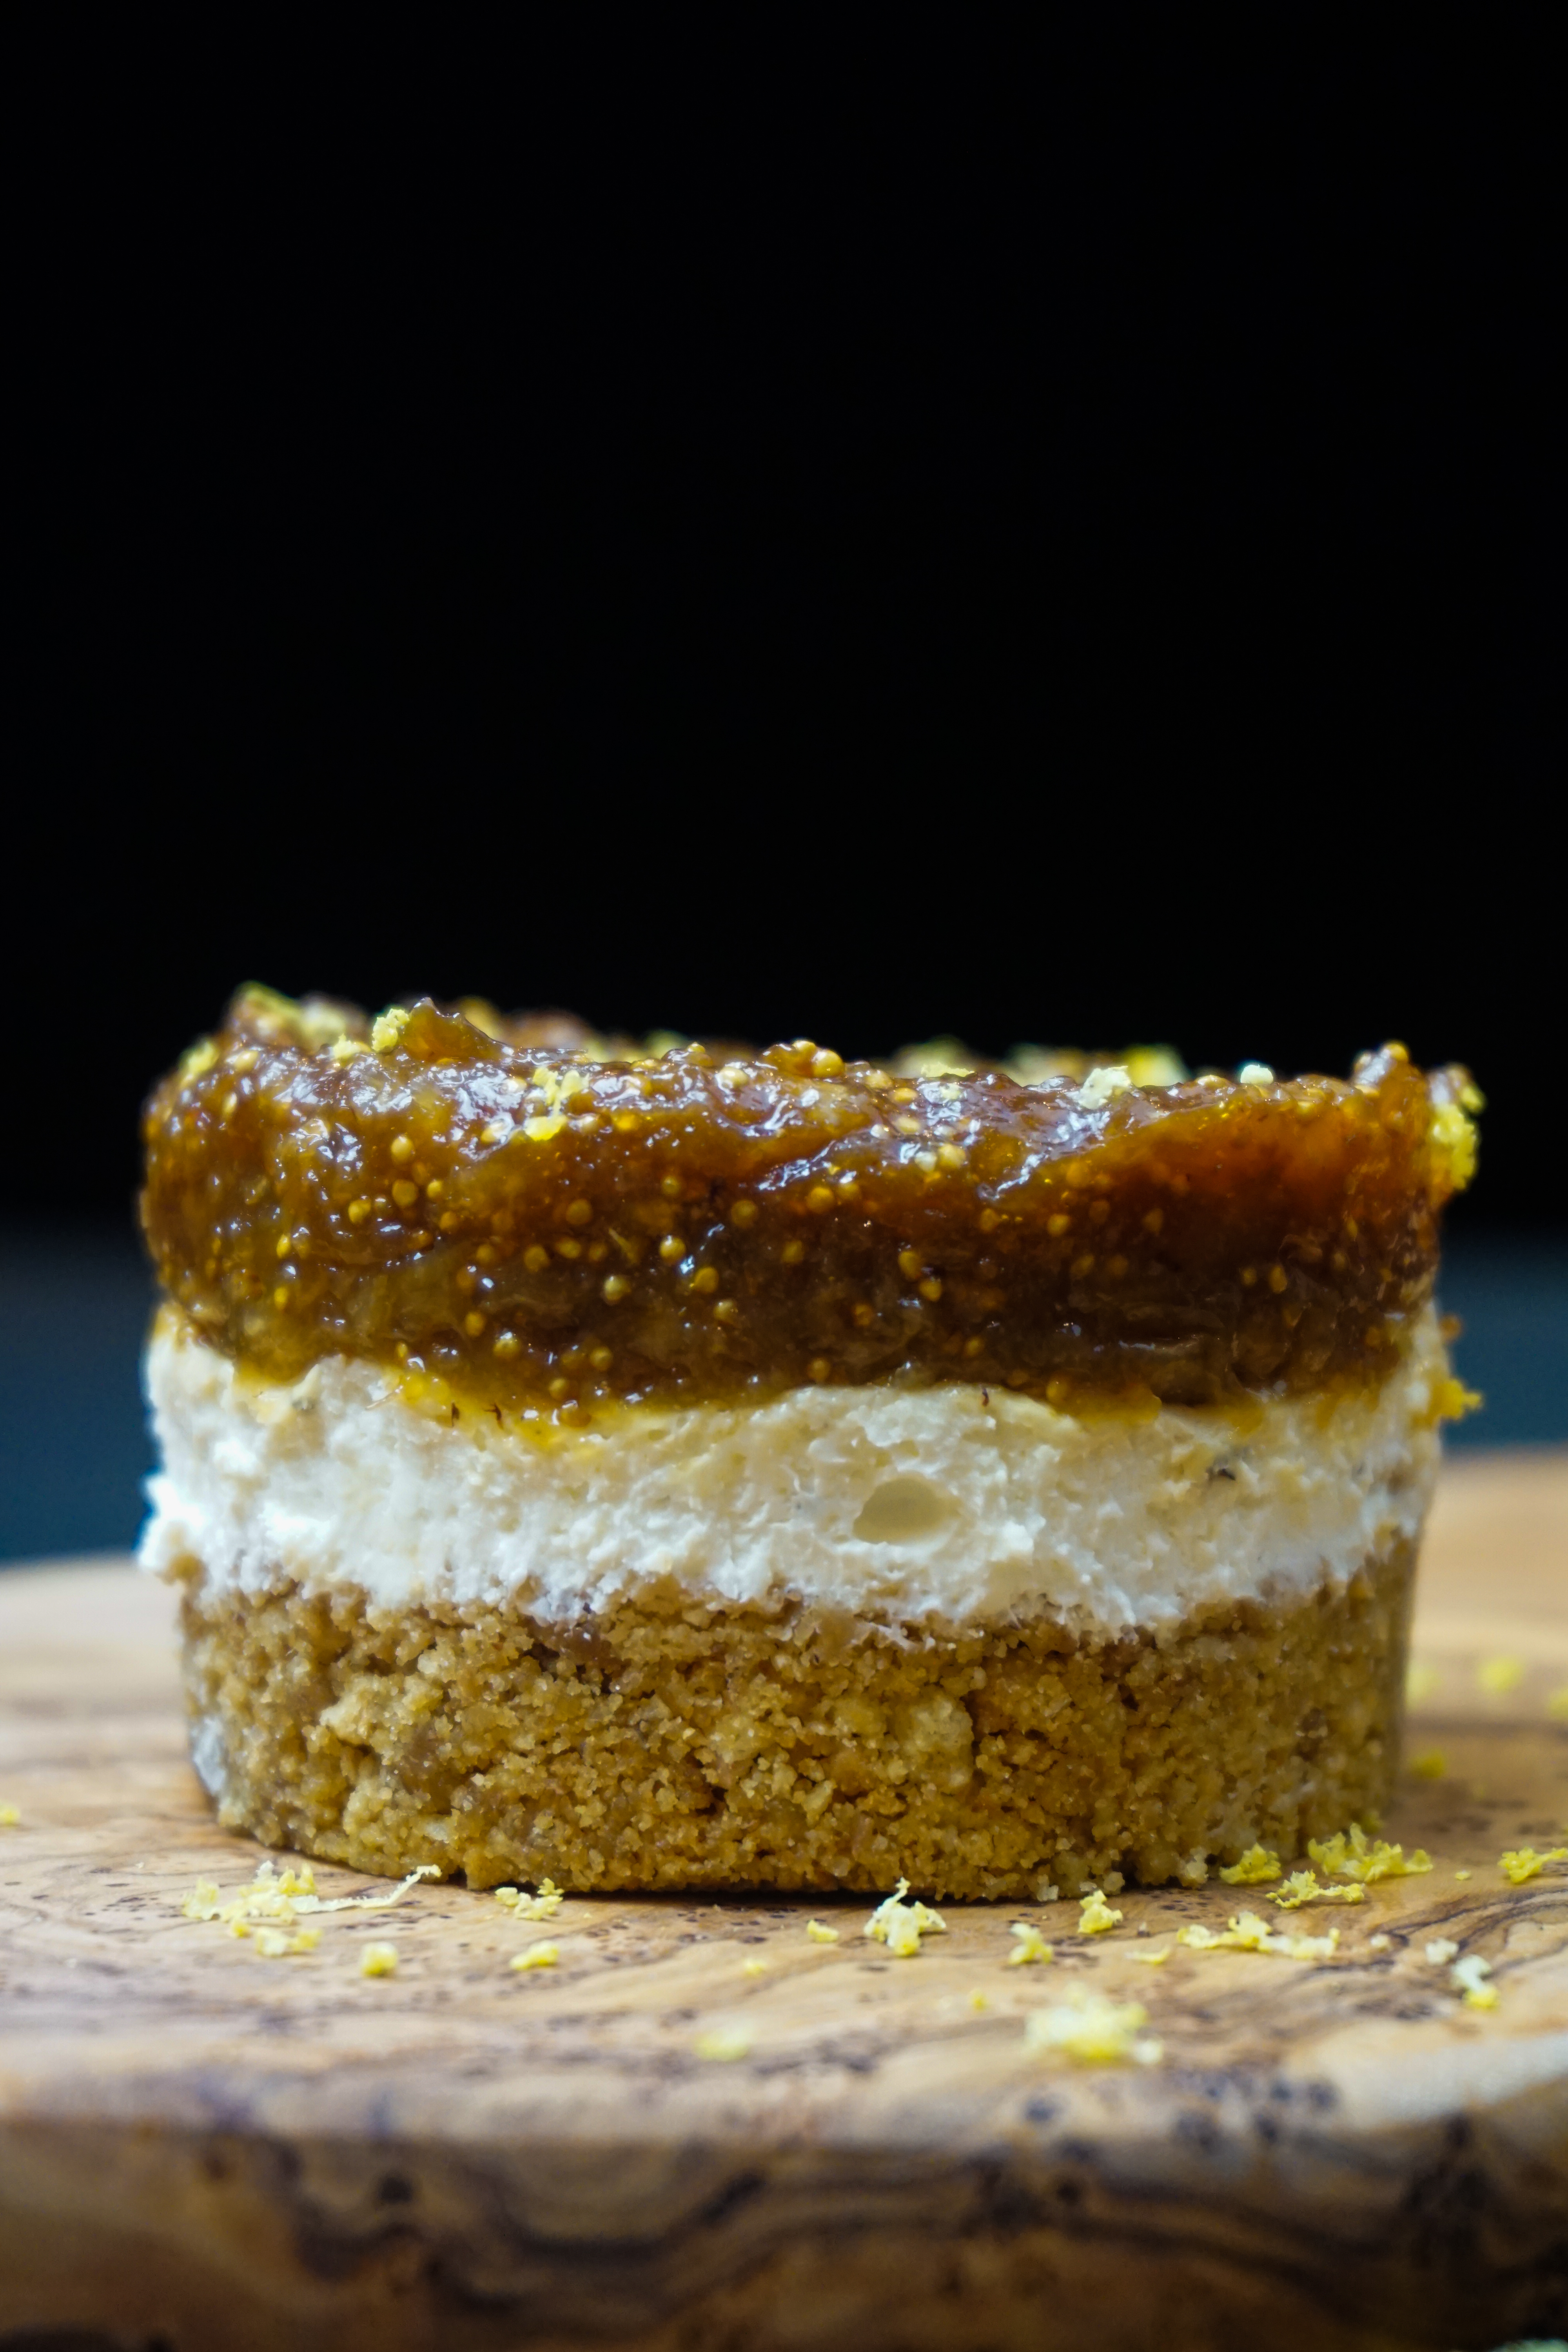 Goat's Cheese and Honey'd Fig Cheesecake